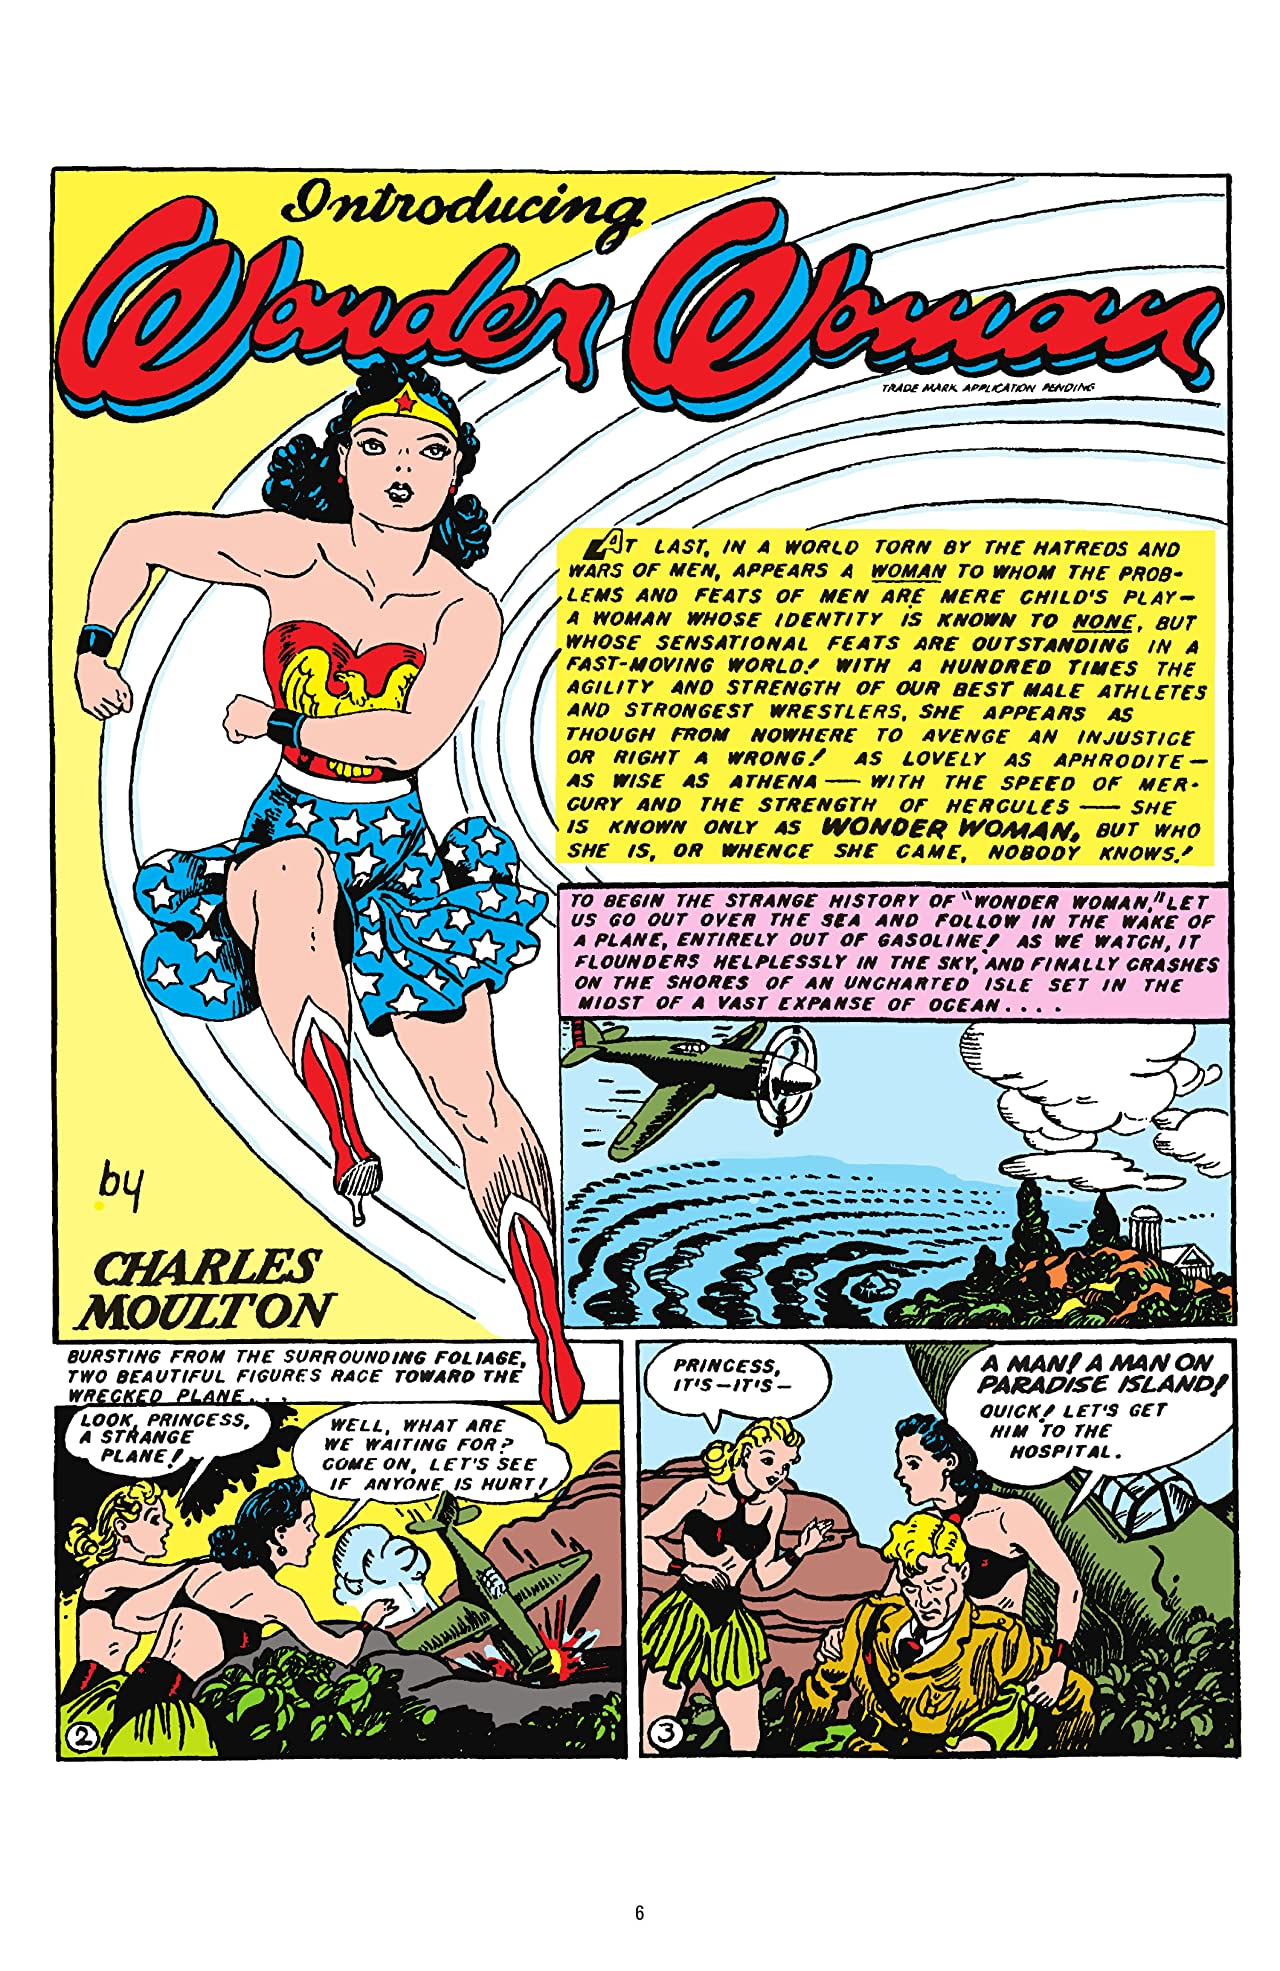 Wonder Woman: 80 Years of the Amazon Warrior: The Deluxe Edition